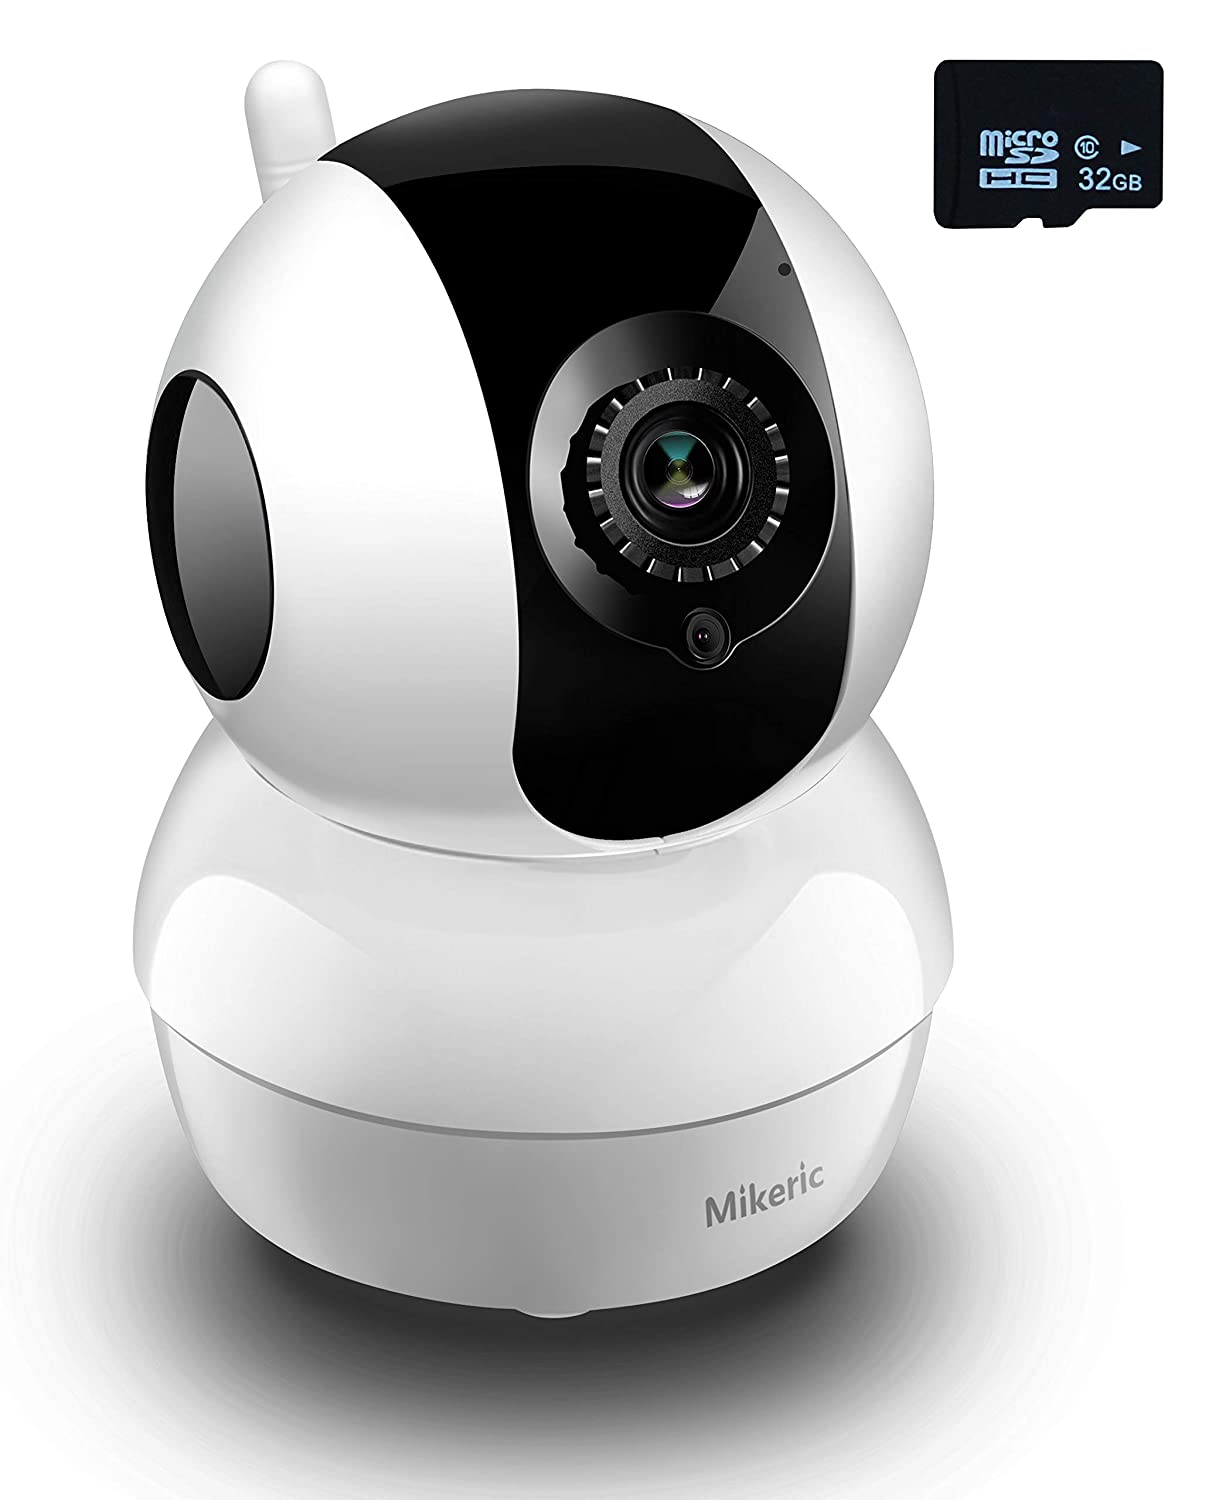 Mikeric IP WiFi Security Camera 1080P, Includes 32GB Micro SD-Camera with Motion Detection Night Vision 2-Way Audio for Home Office Baby Nanny Pet Monitor,Work with iOS Android Windows